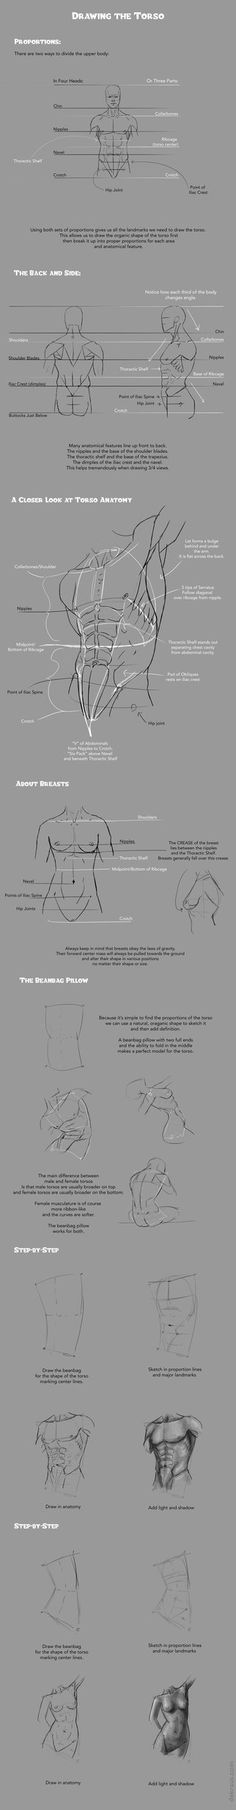 Drawing Torsos Tutorial by banjodi on DeviantArt